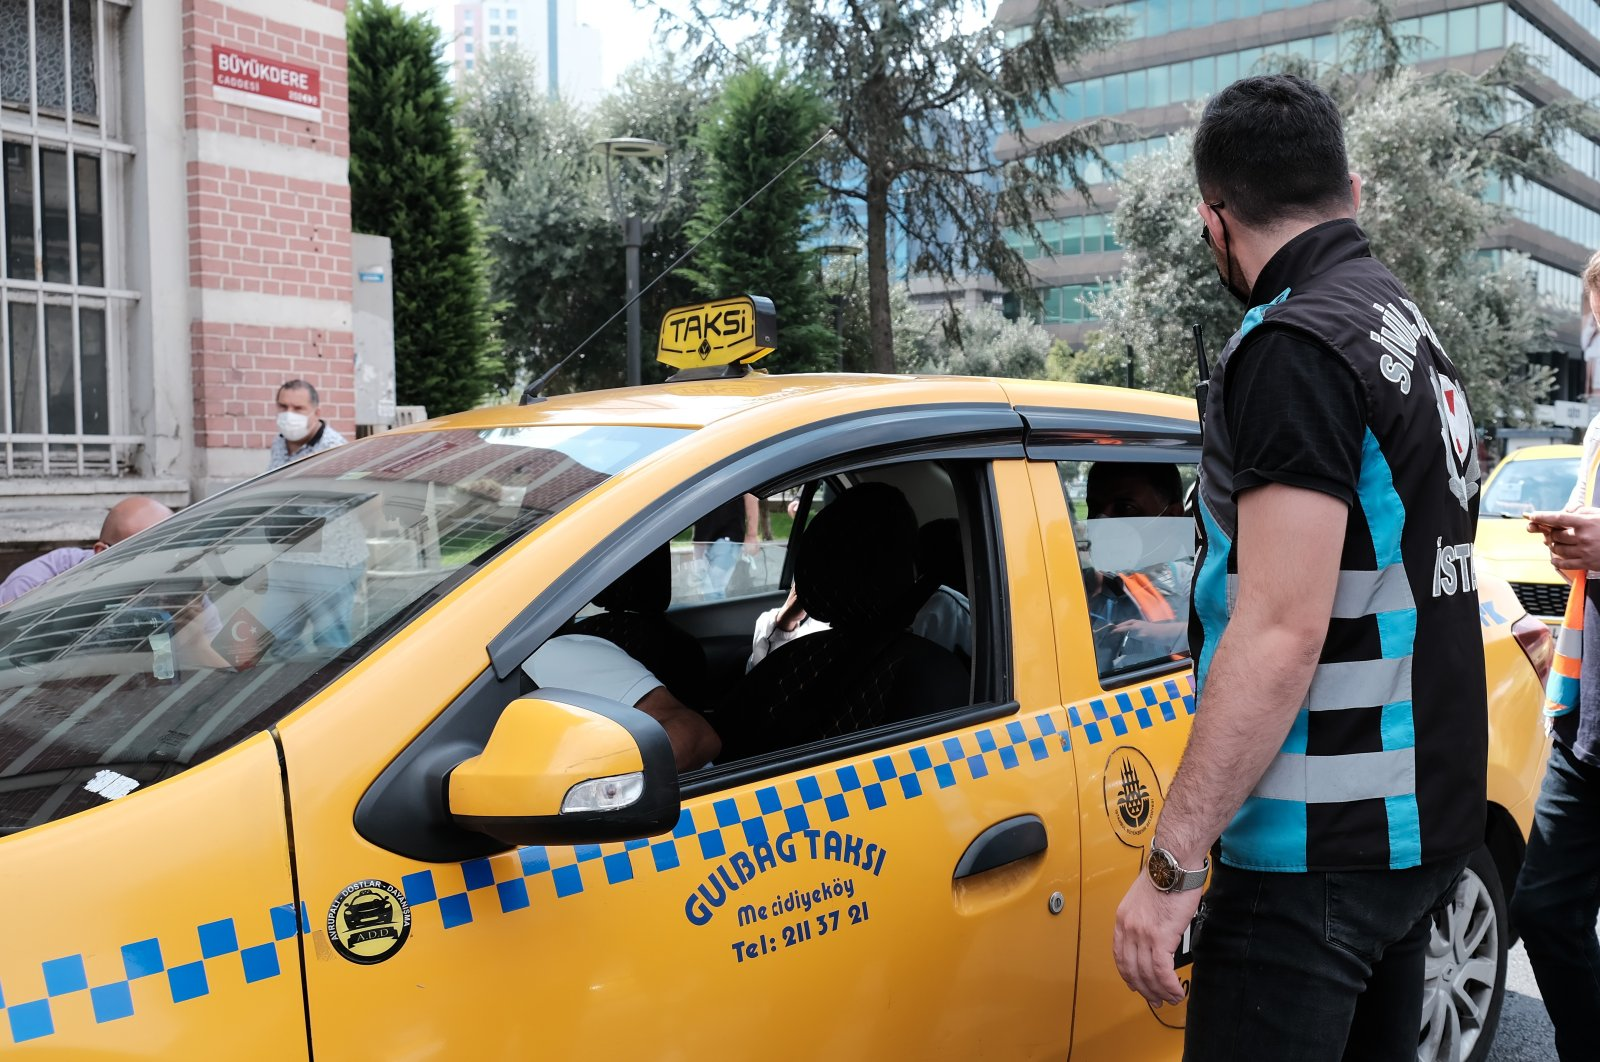 Police officers inspect a taxi in Mecidiyeköy, in Istanbul, Turkey, Sept. 13, 2021. (İHA PHOTO)